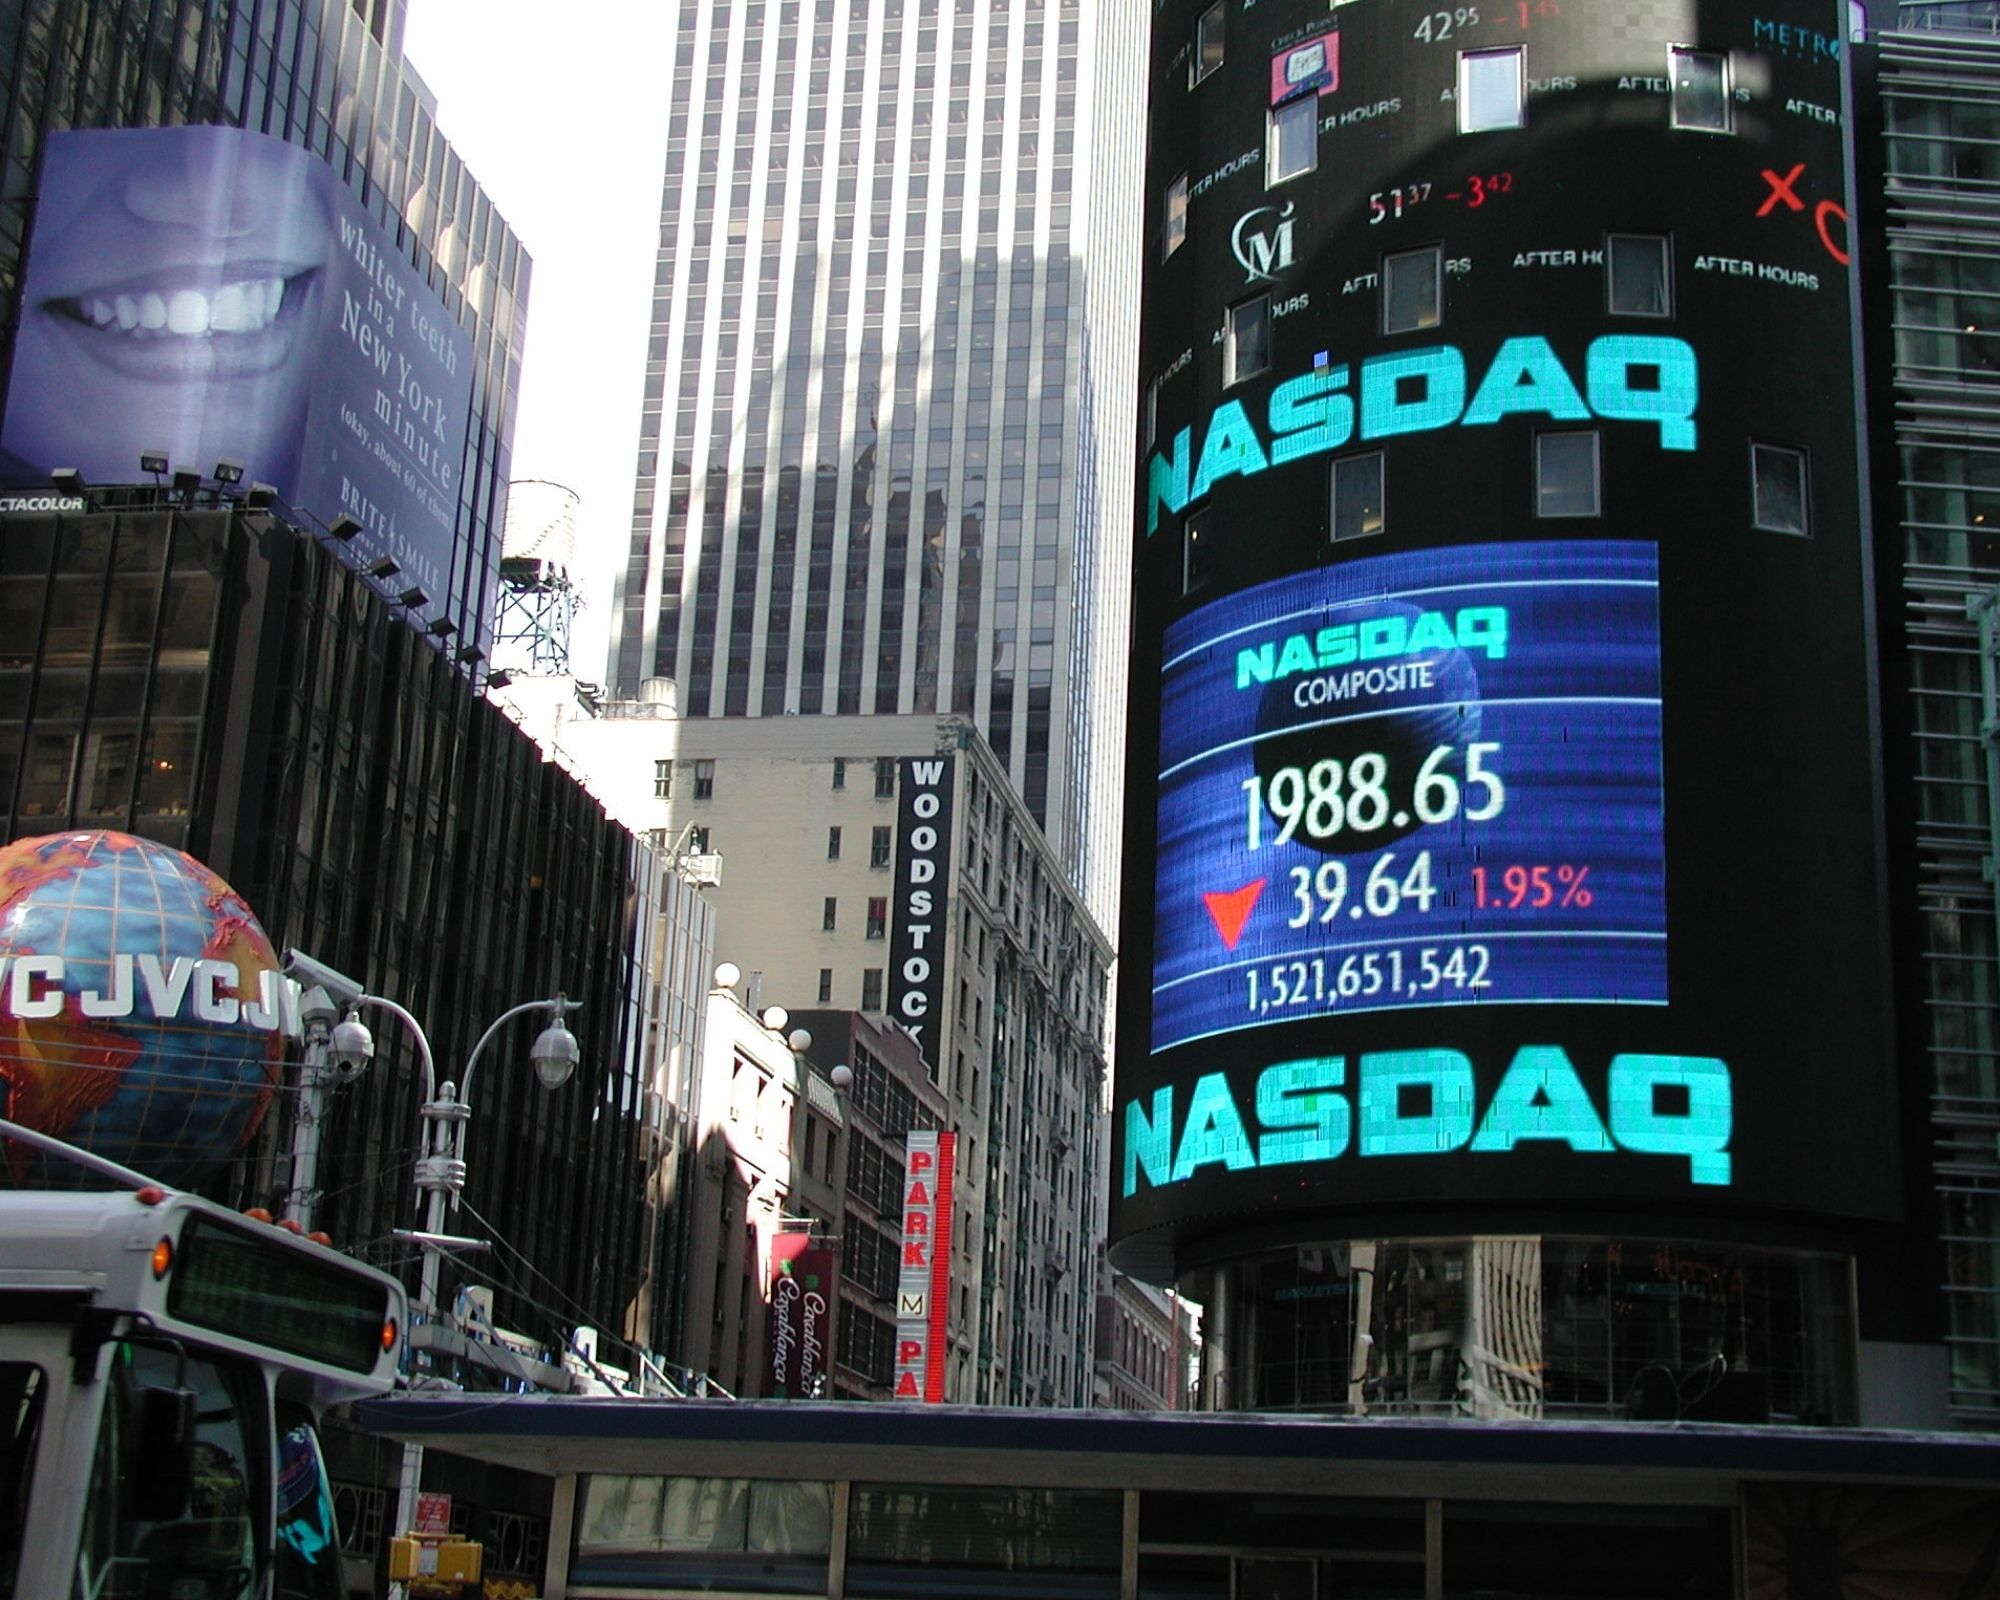 Sustainable Investments Get a Boost from Nasdaq Program Announcement